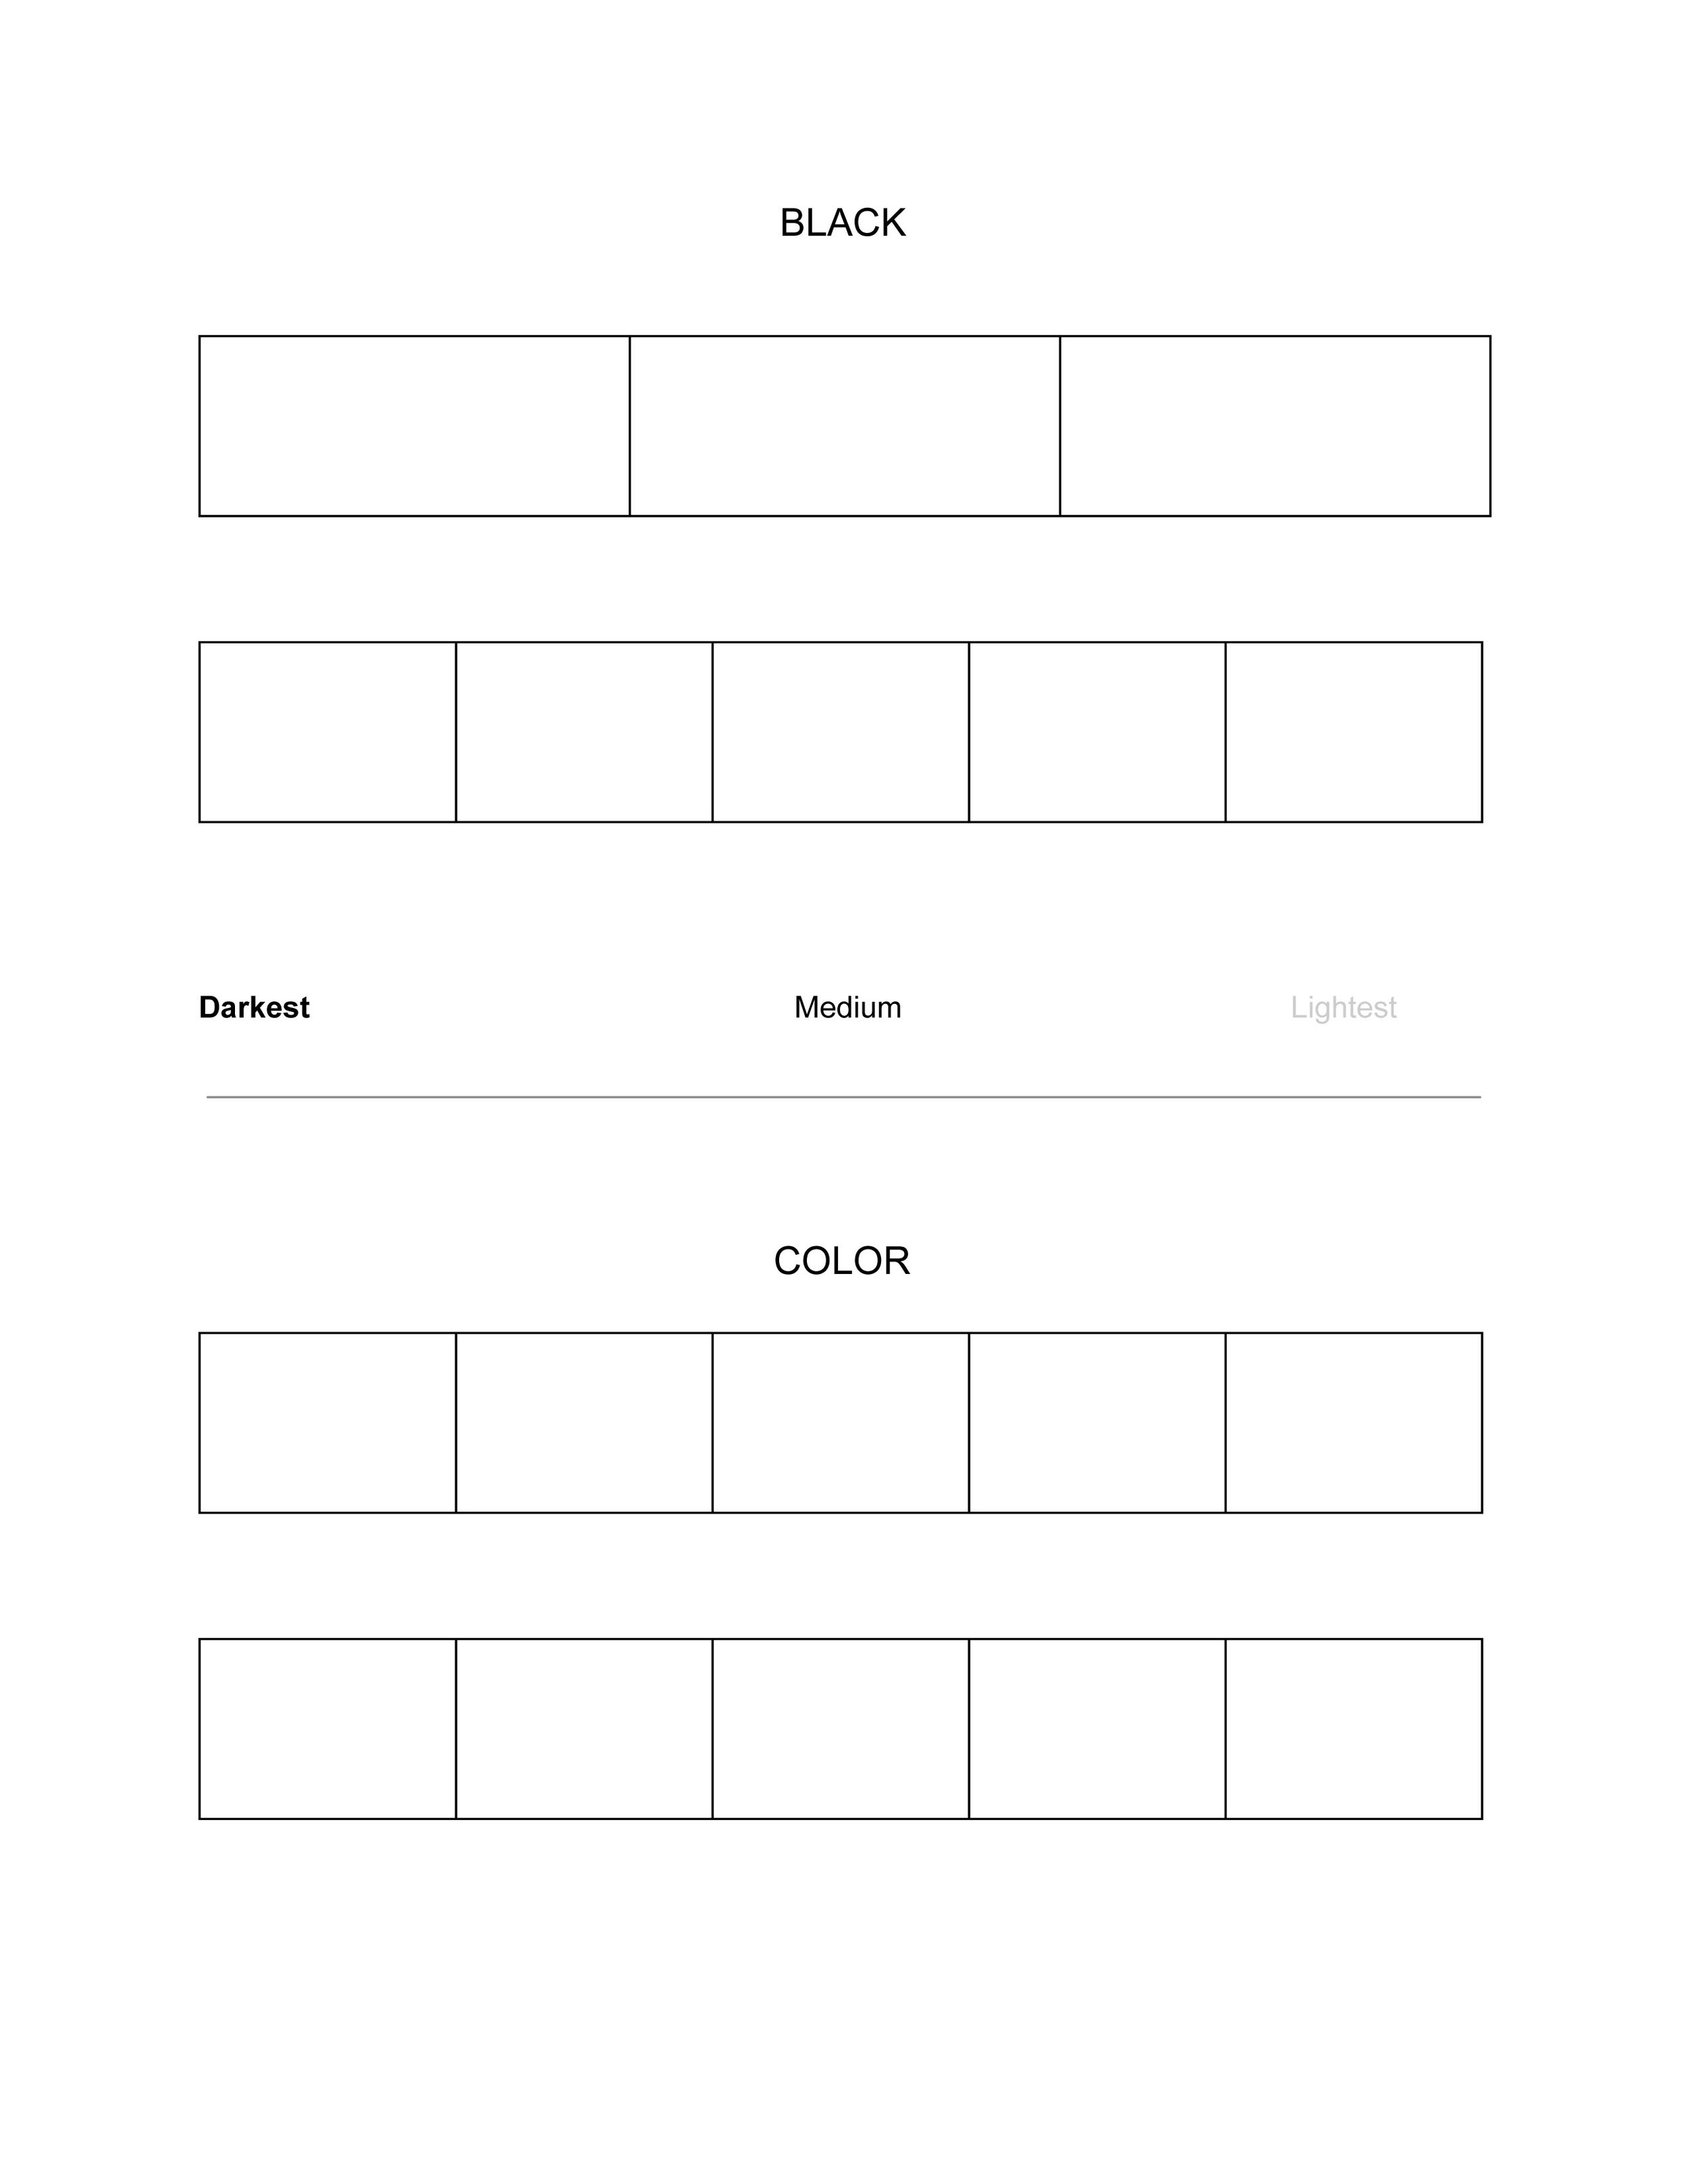 Value Charts Practice Sheet.jpg